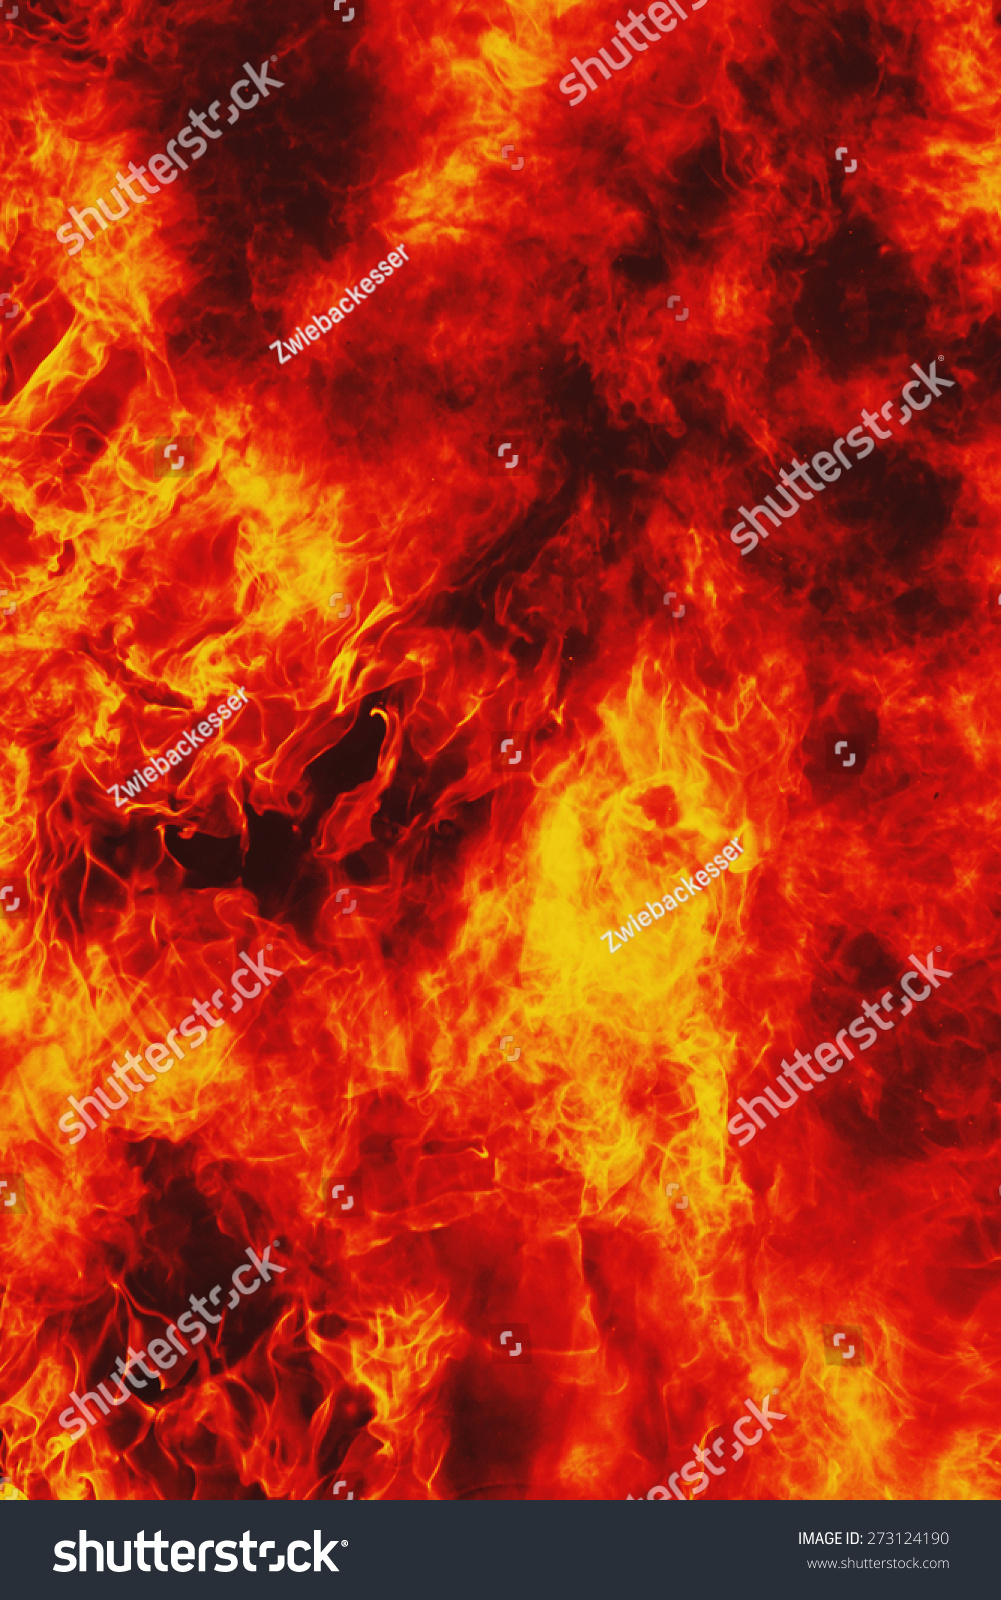 Background Of Fire As A Symbol Of Hell And Inferno Ez Canvas